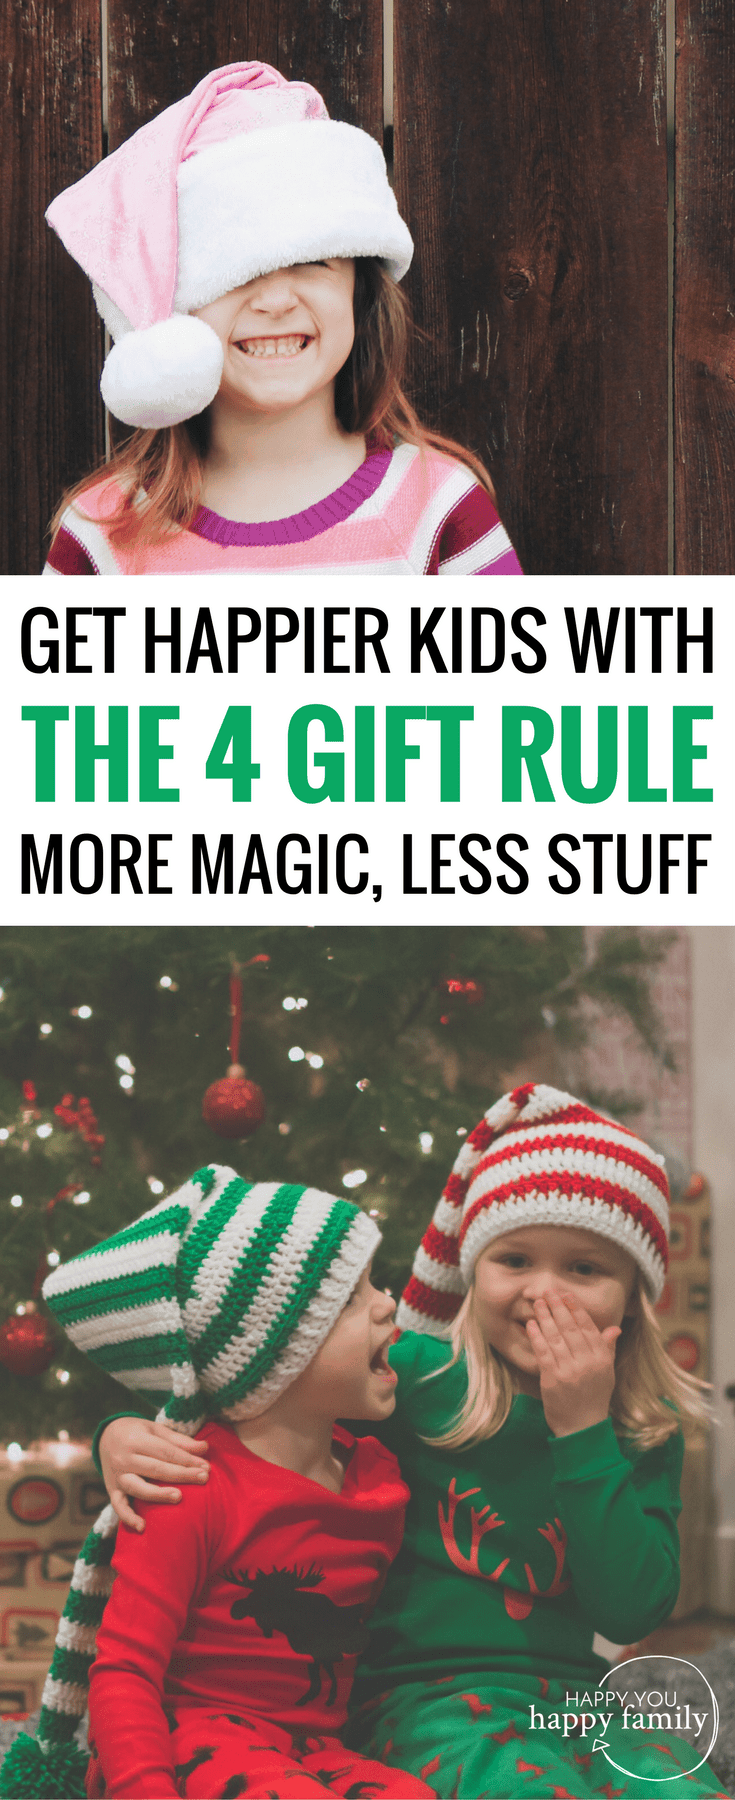 Interested in the 4-gift rule for Christmas but worried your kids will revolt? This post is SO HELPFUL because it gives you everything you need to adopt the 4-present tradition for your family. And here's the BEST part: Your kids will actually be happier with just 4 gifts for Christmas! All the gotchas to avoid plus a list of the best